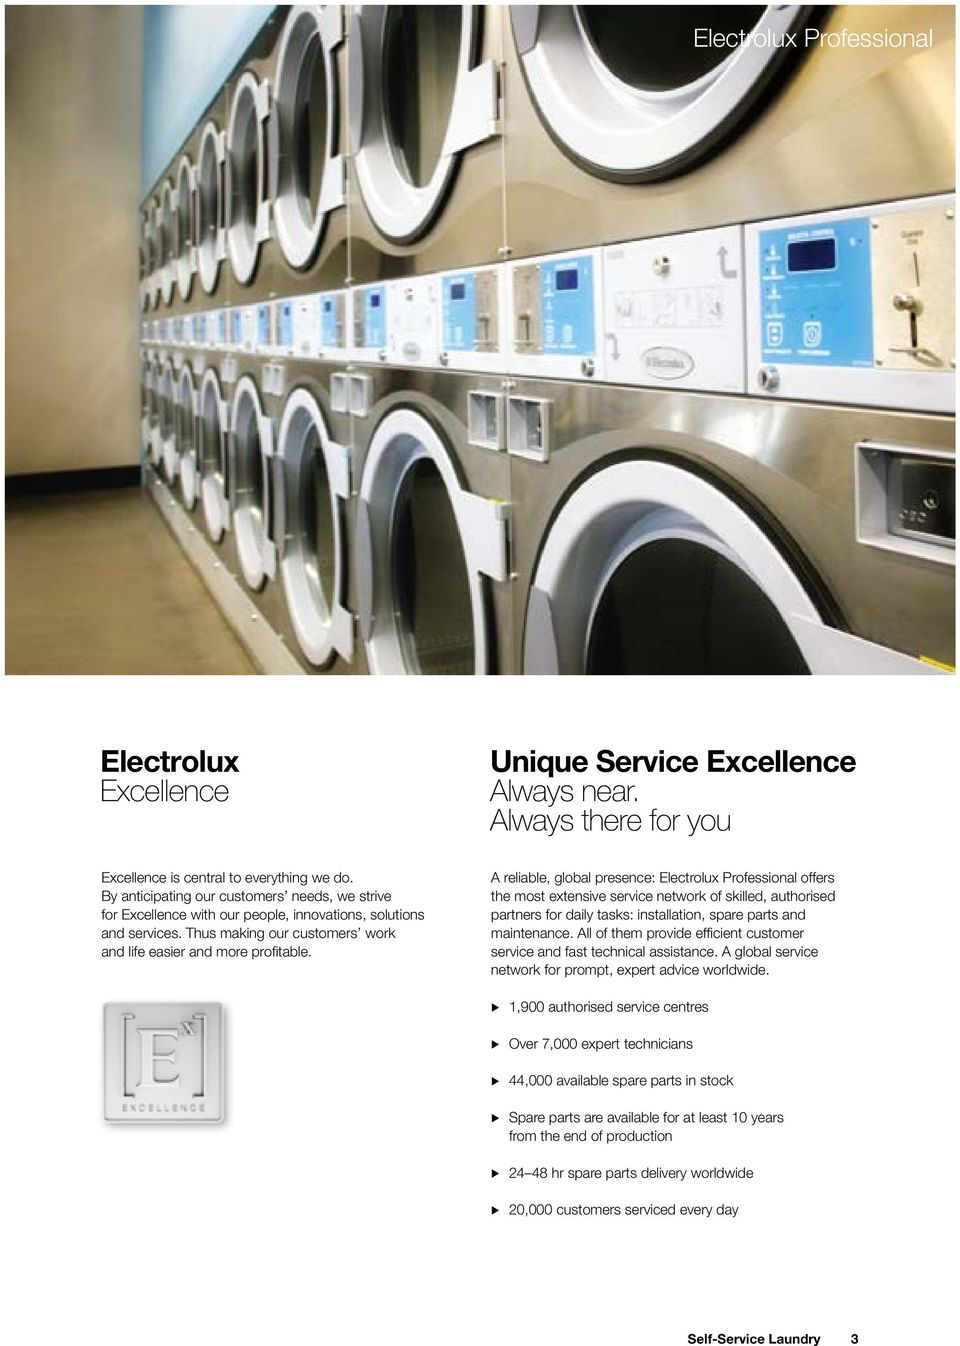 A reliable, global presence: Electrolux Professional offers the most extensive service network of skilled, authorised partners for daily tasks: installation, spare parts and maintenance.